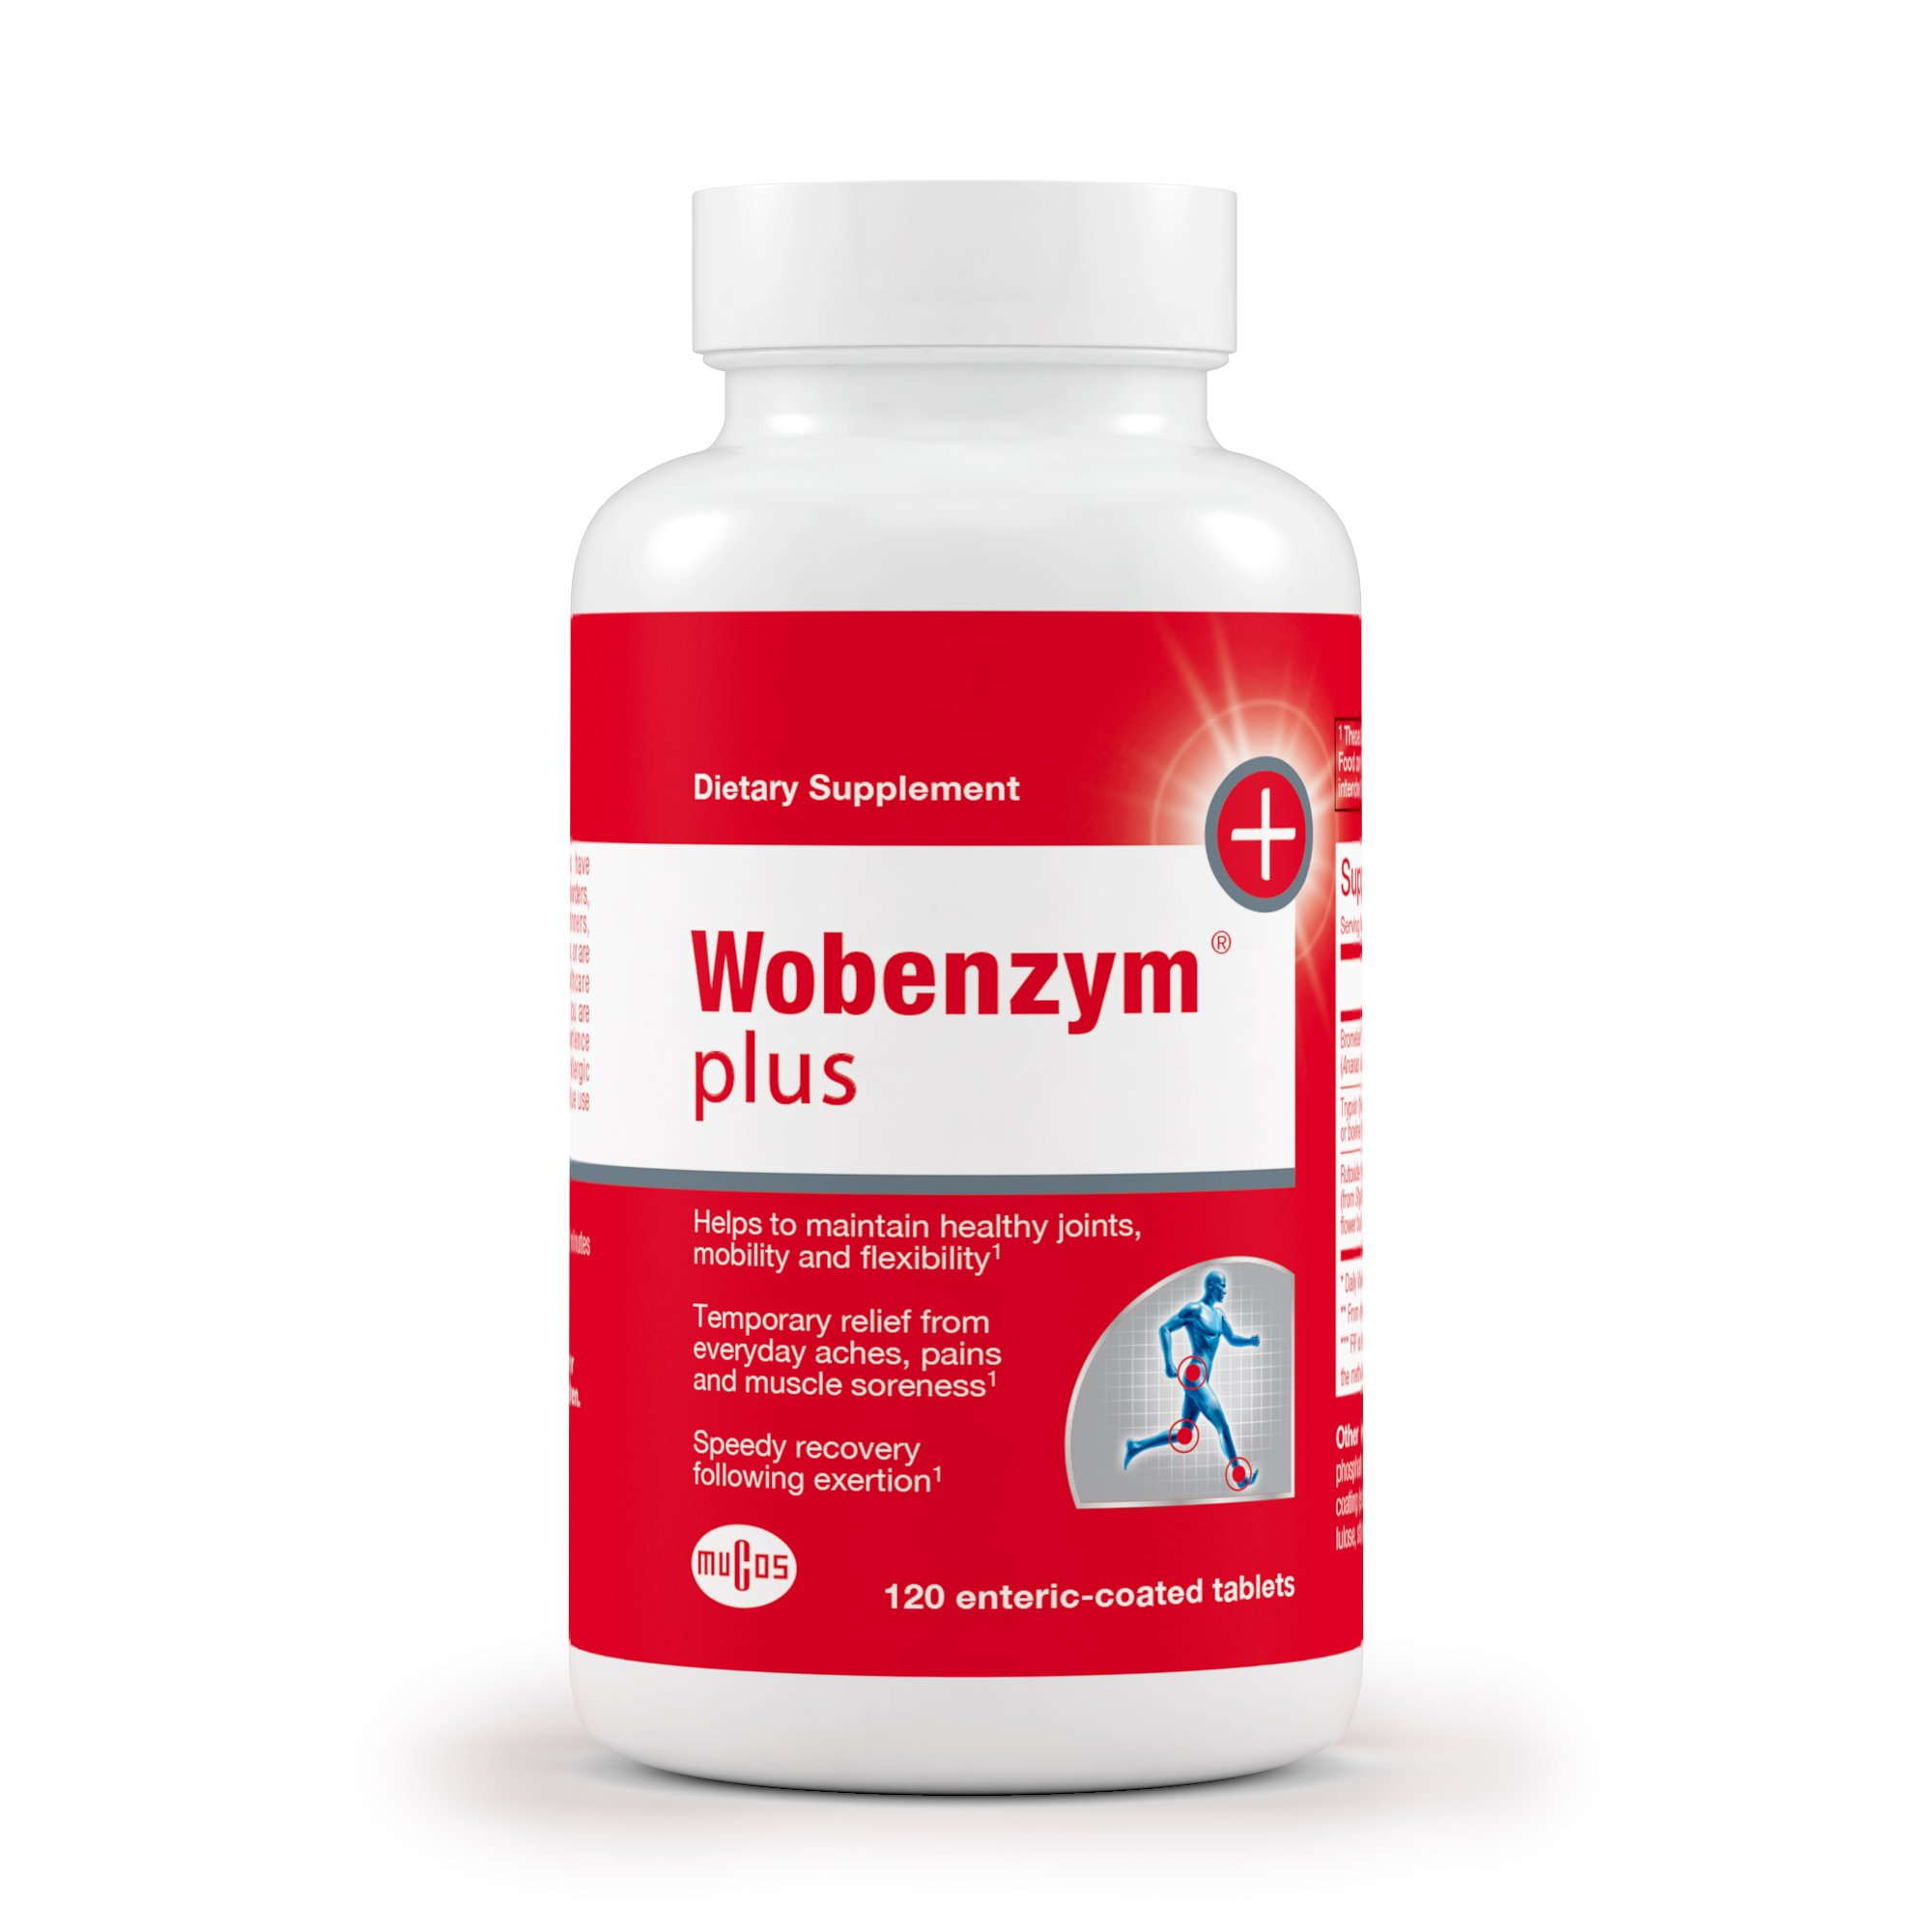 Wobenzym - Wobenzym Plus - Number One Joint Health Pill in Germany*, Supports Joint Function, Muscles and Recovery after Exertion - 120 Enteric-Coated Tablets